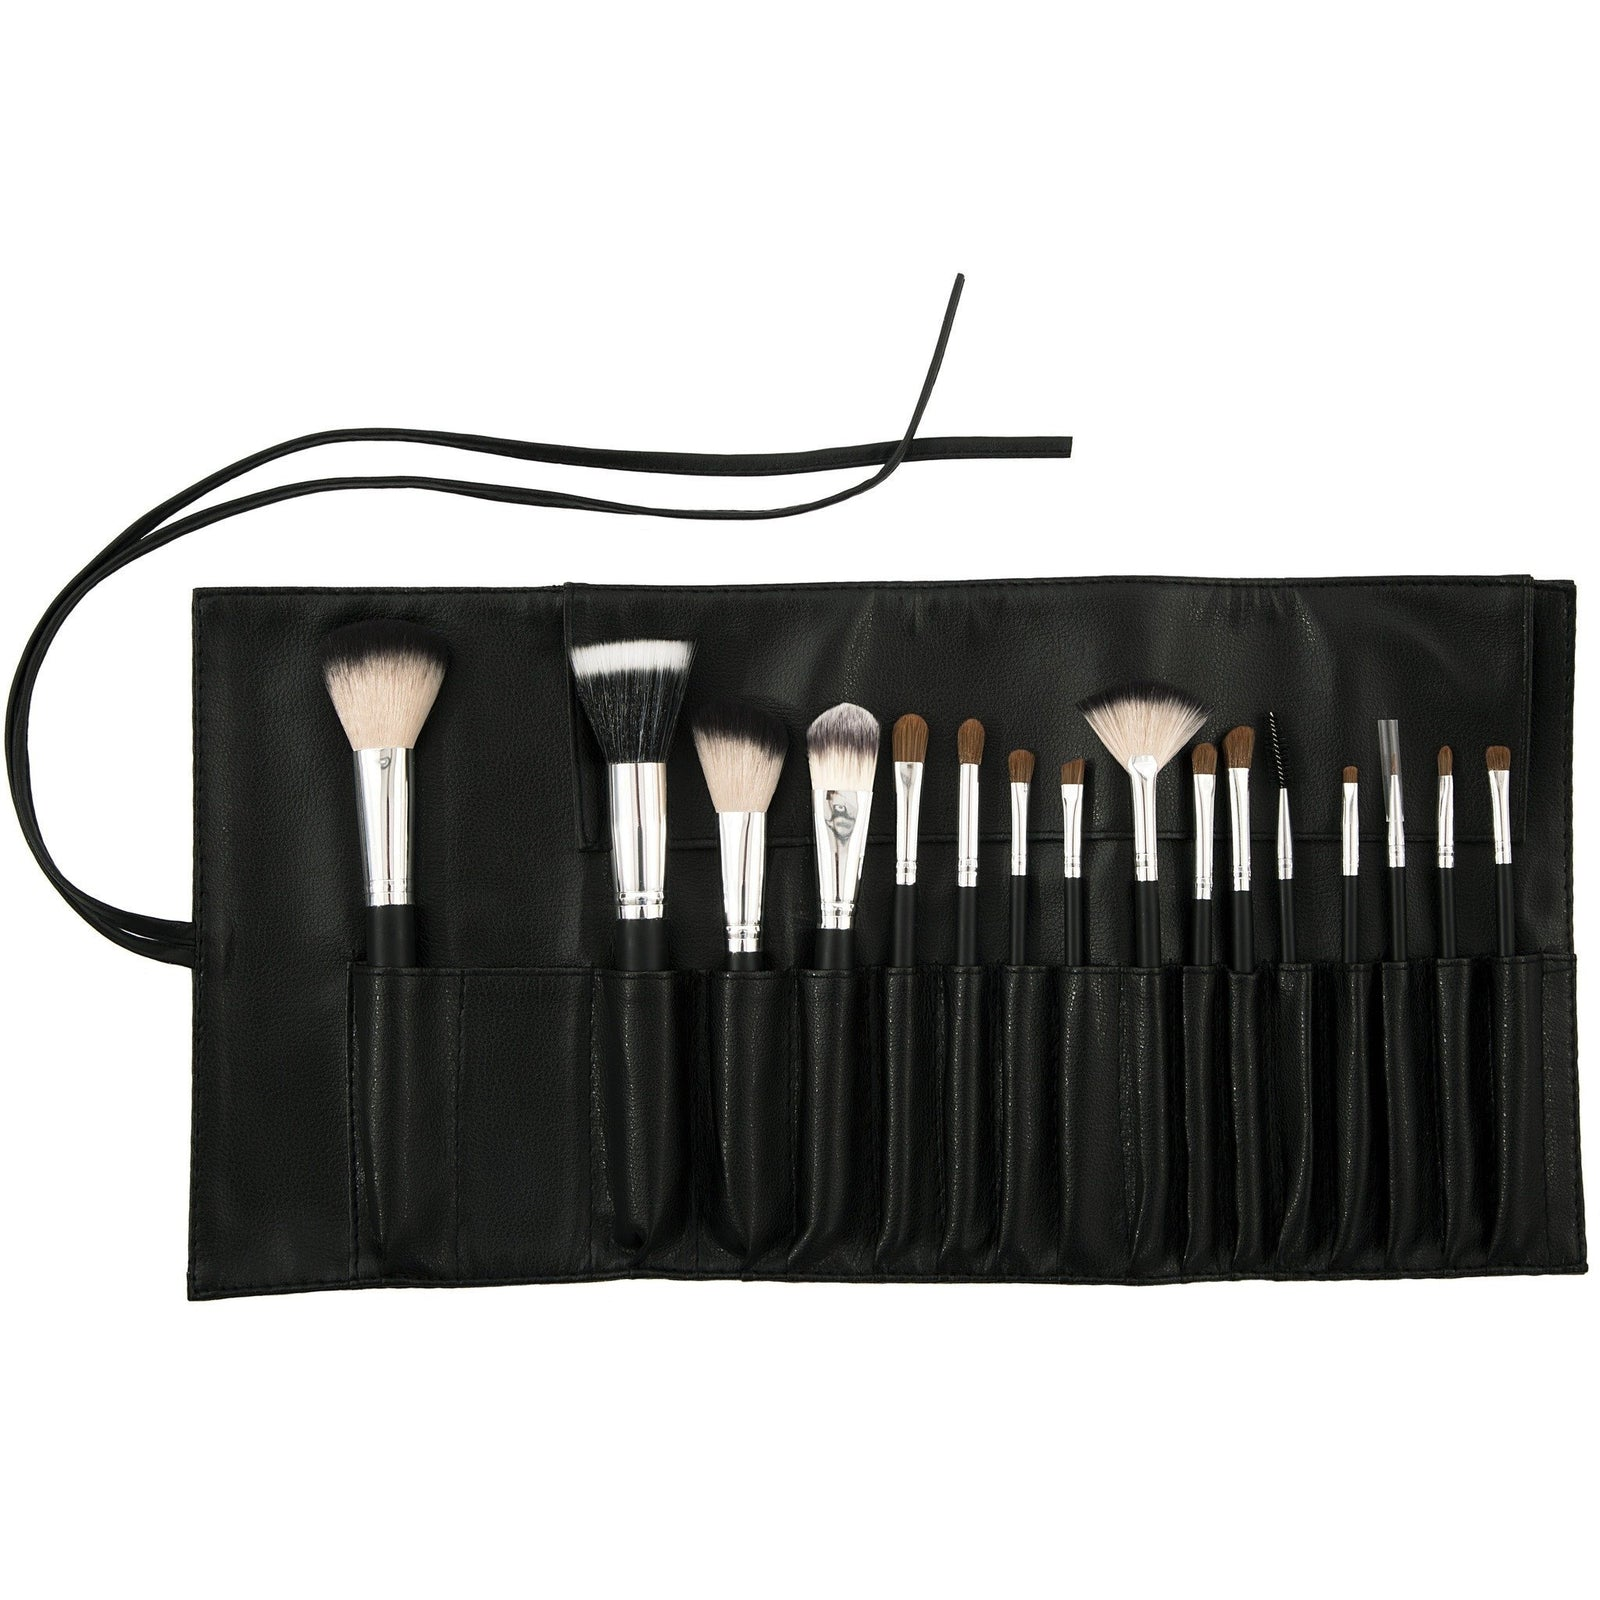 706 Pro Essentials Brush Set Crownbrush